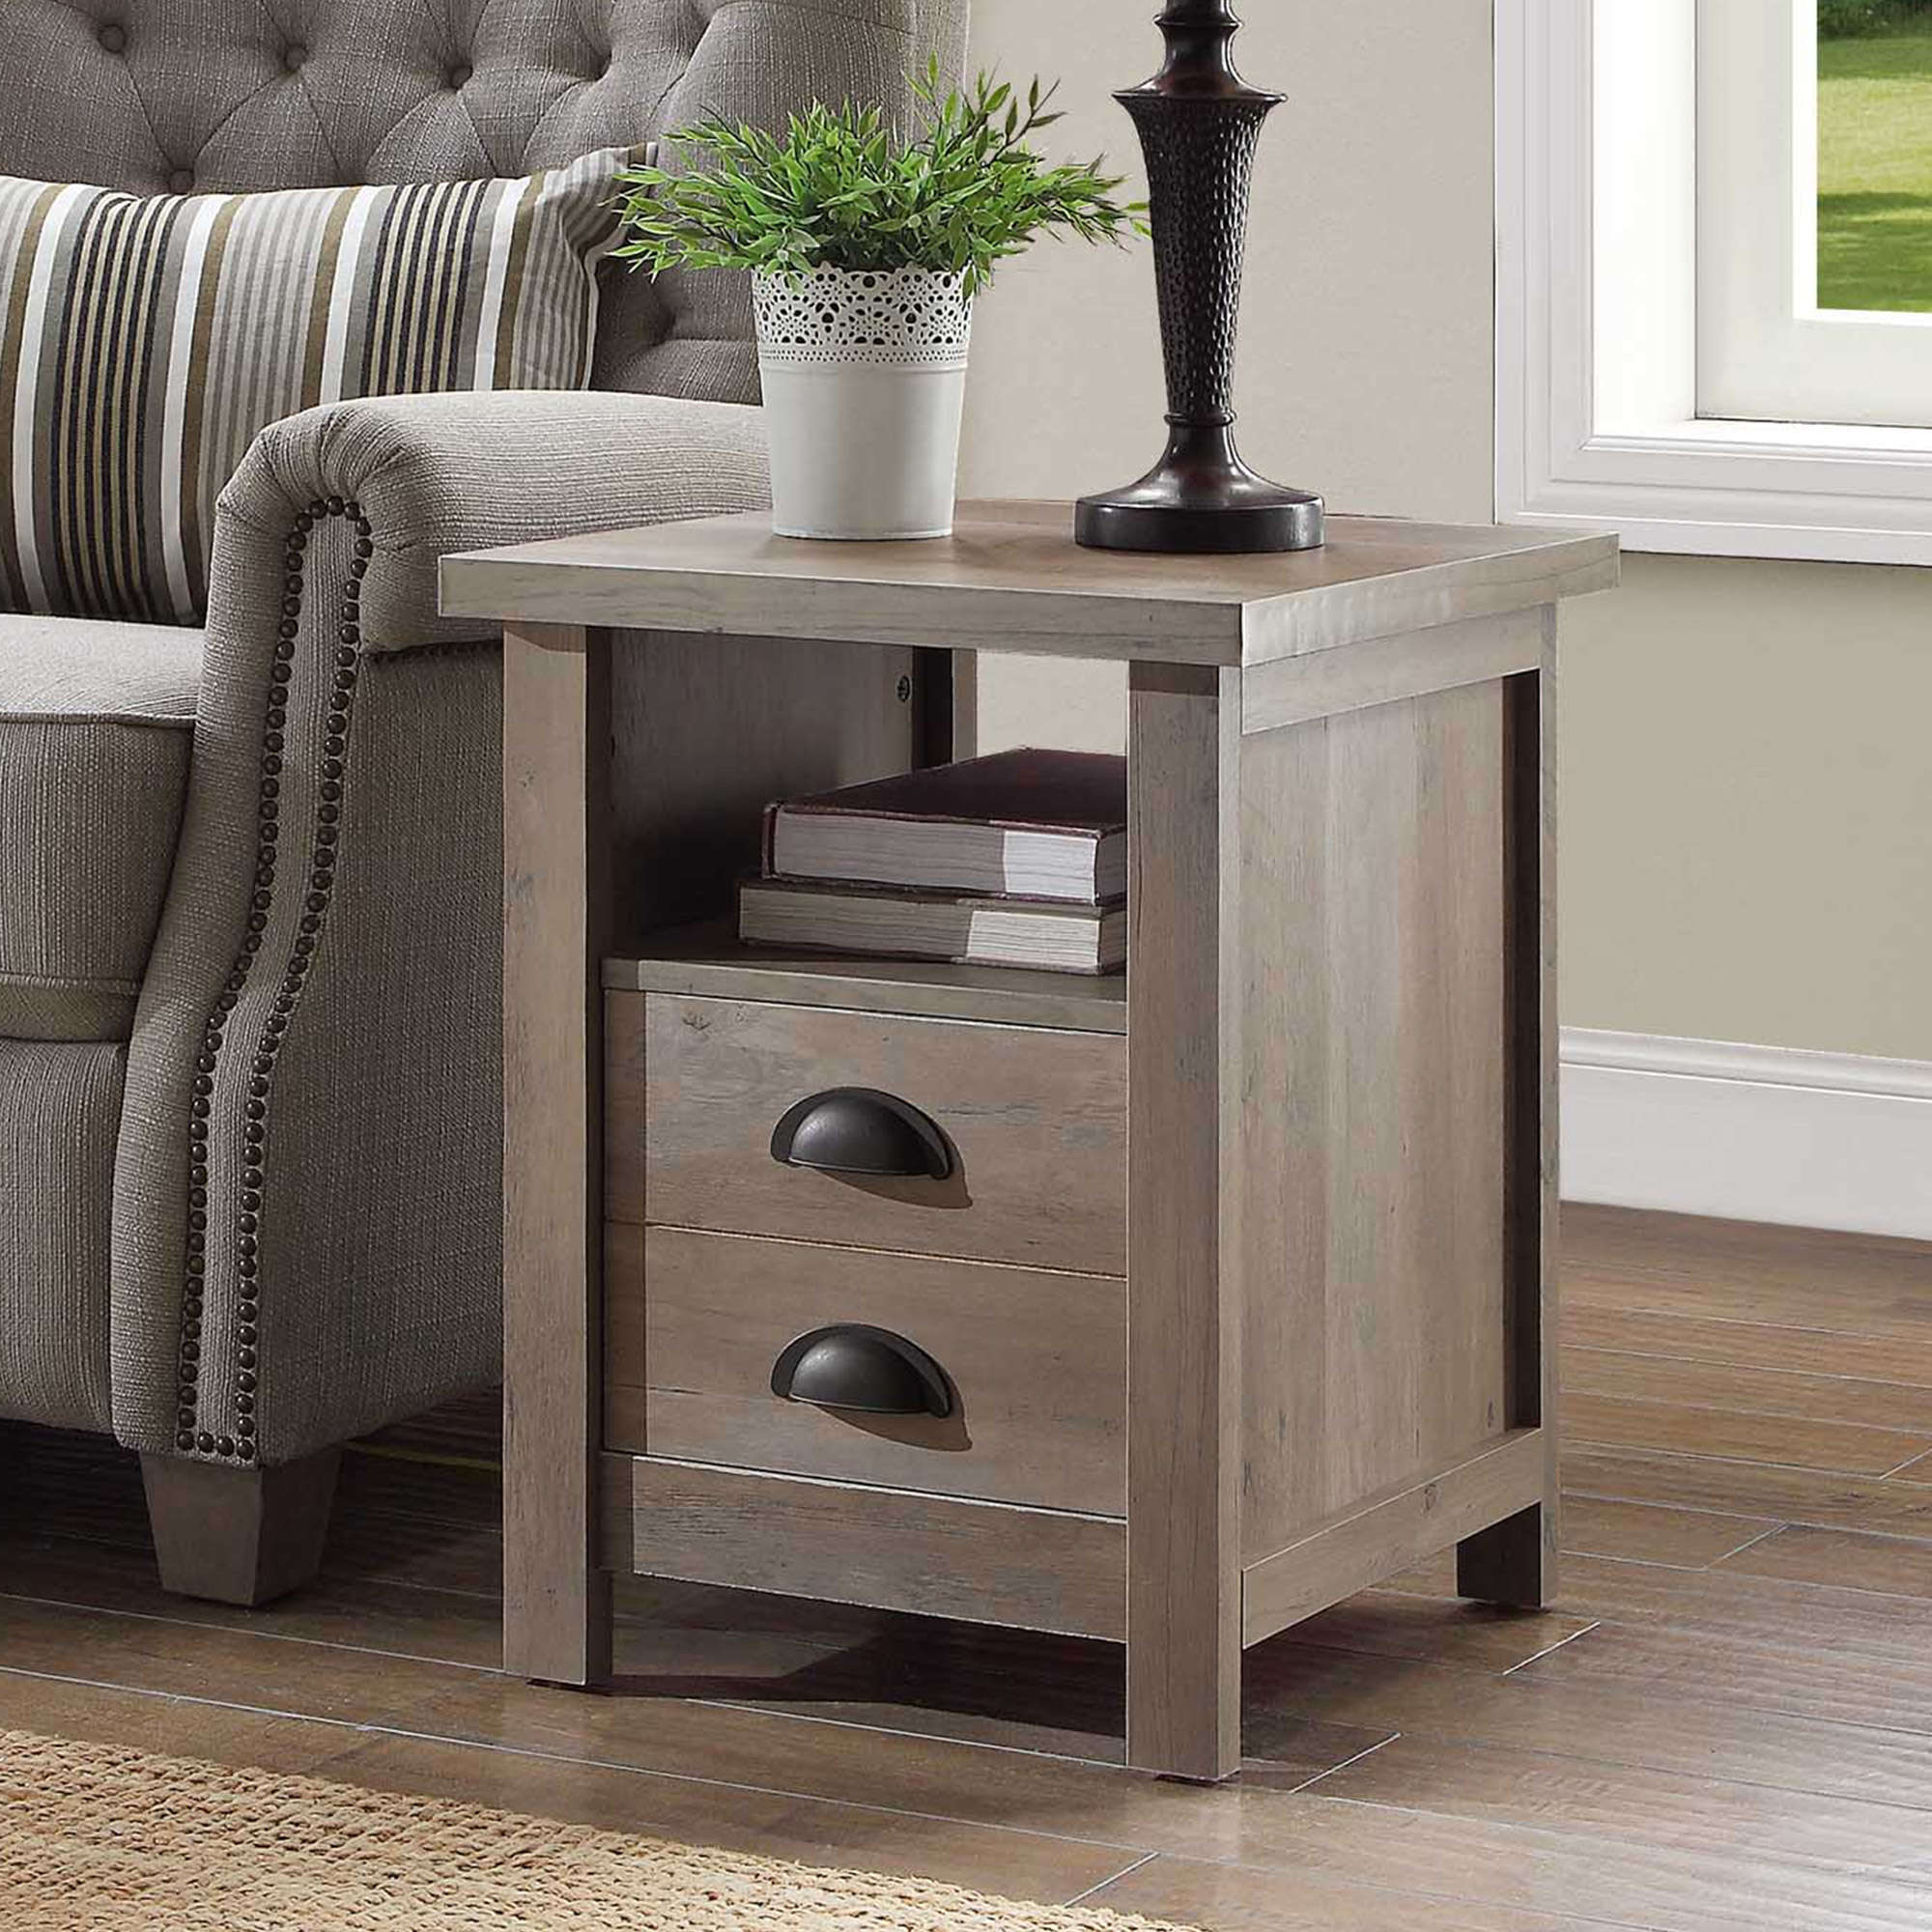 Lovely Better Homes and Gardens Granary Modern Farmhouse End Table Multiple Finishes